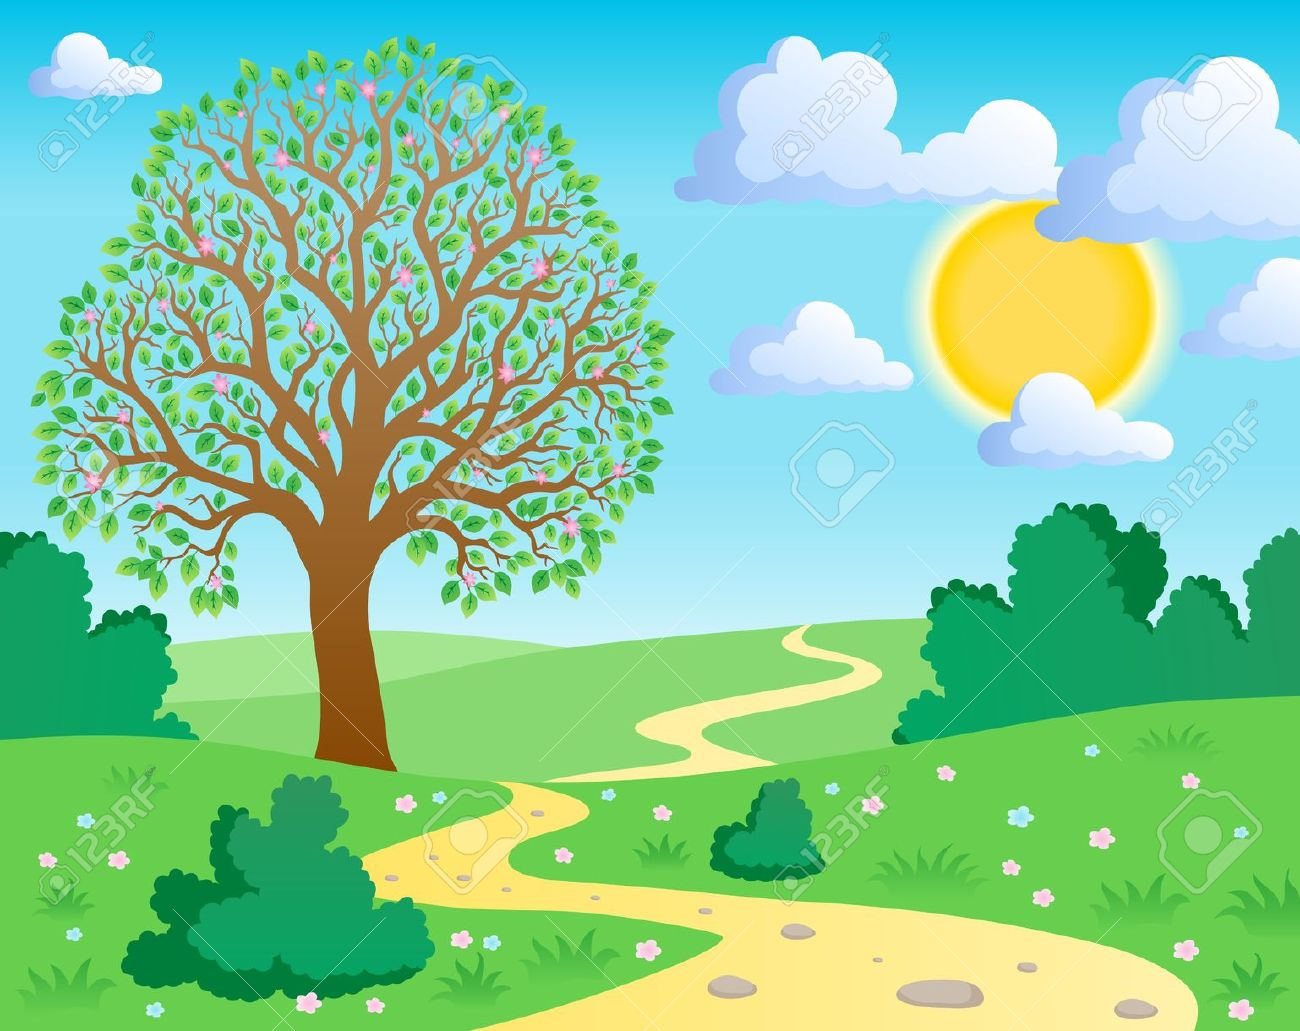 svg royalty free download Free scene cliparts download. Nature clipart.